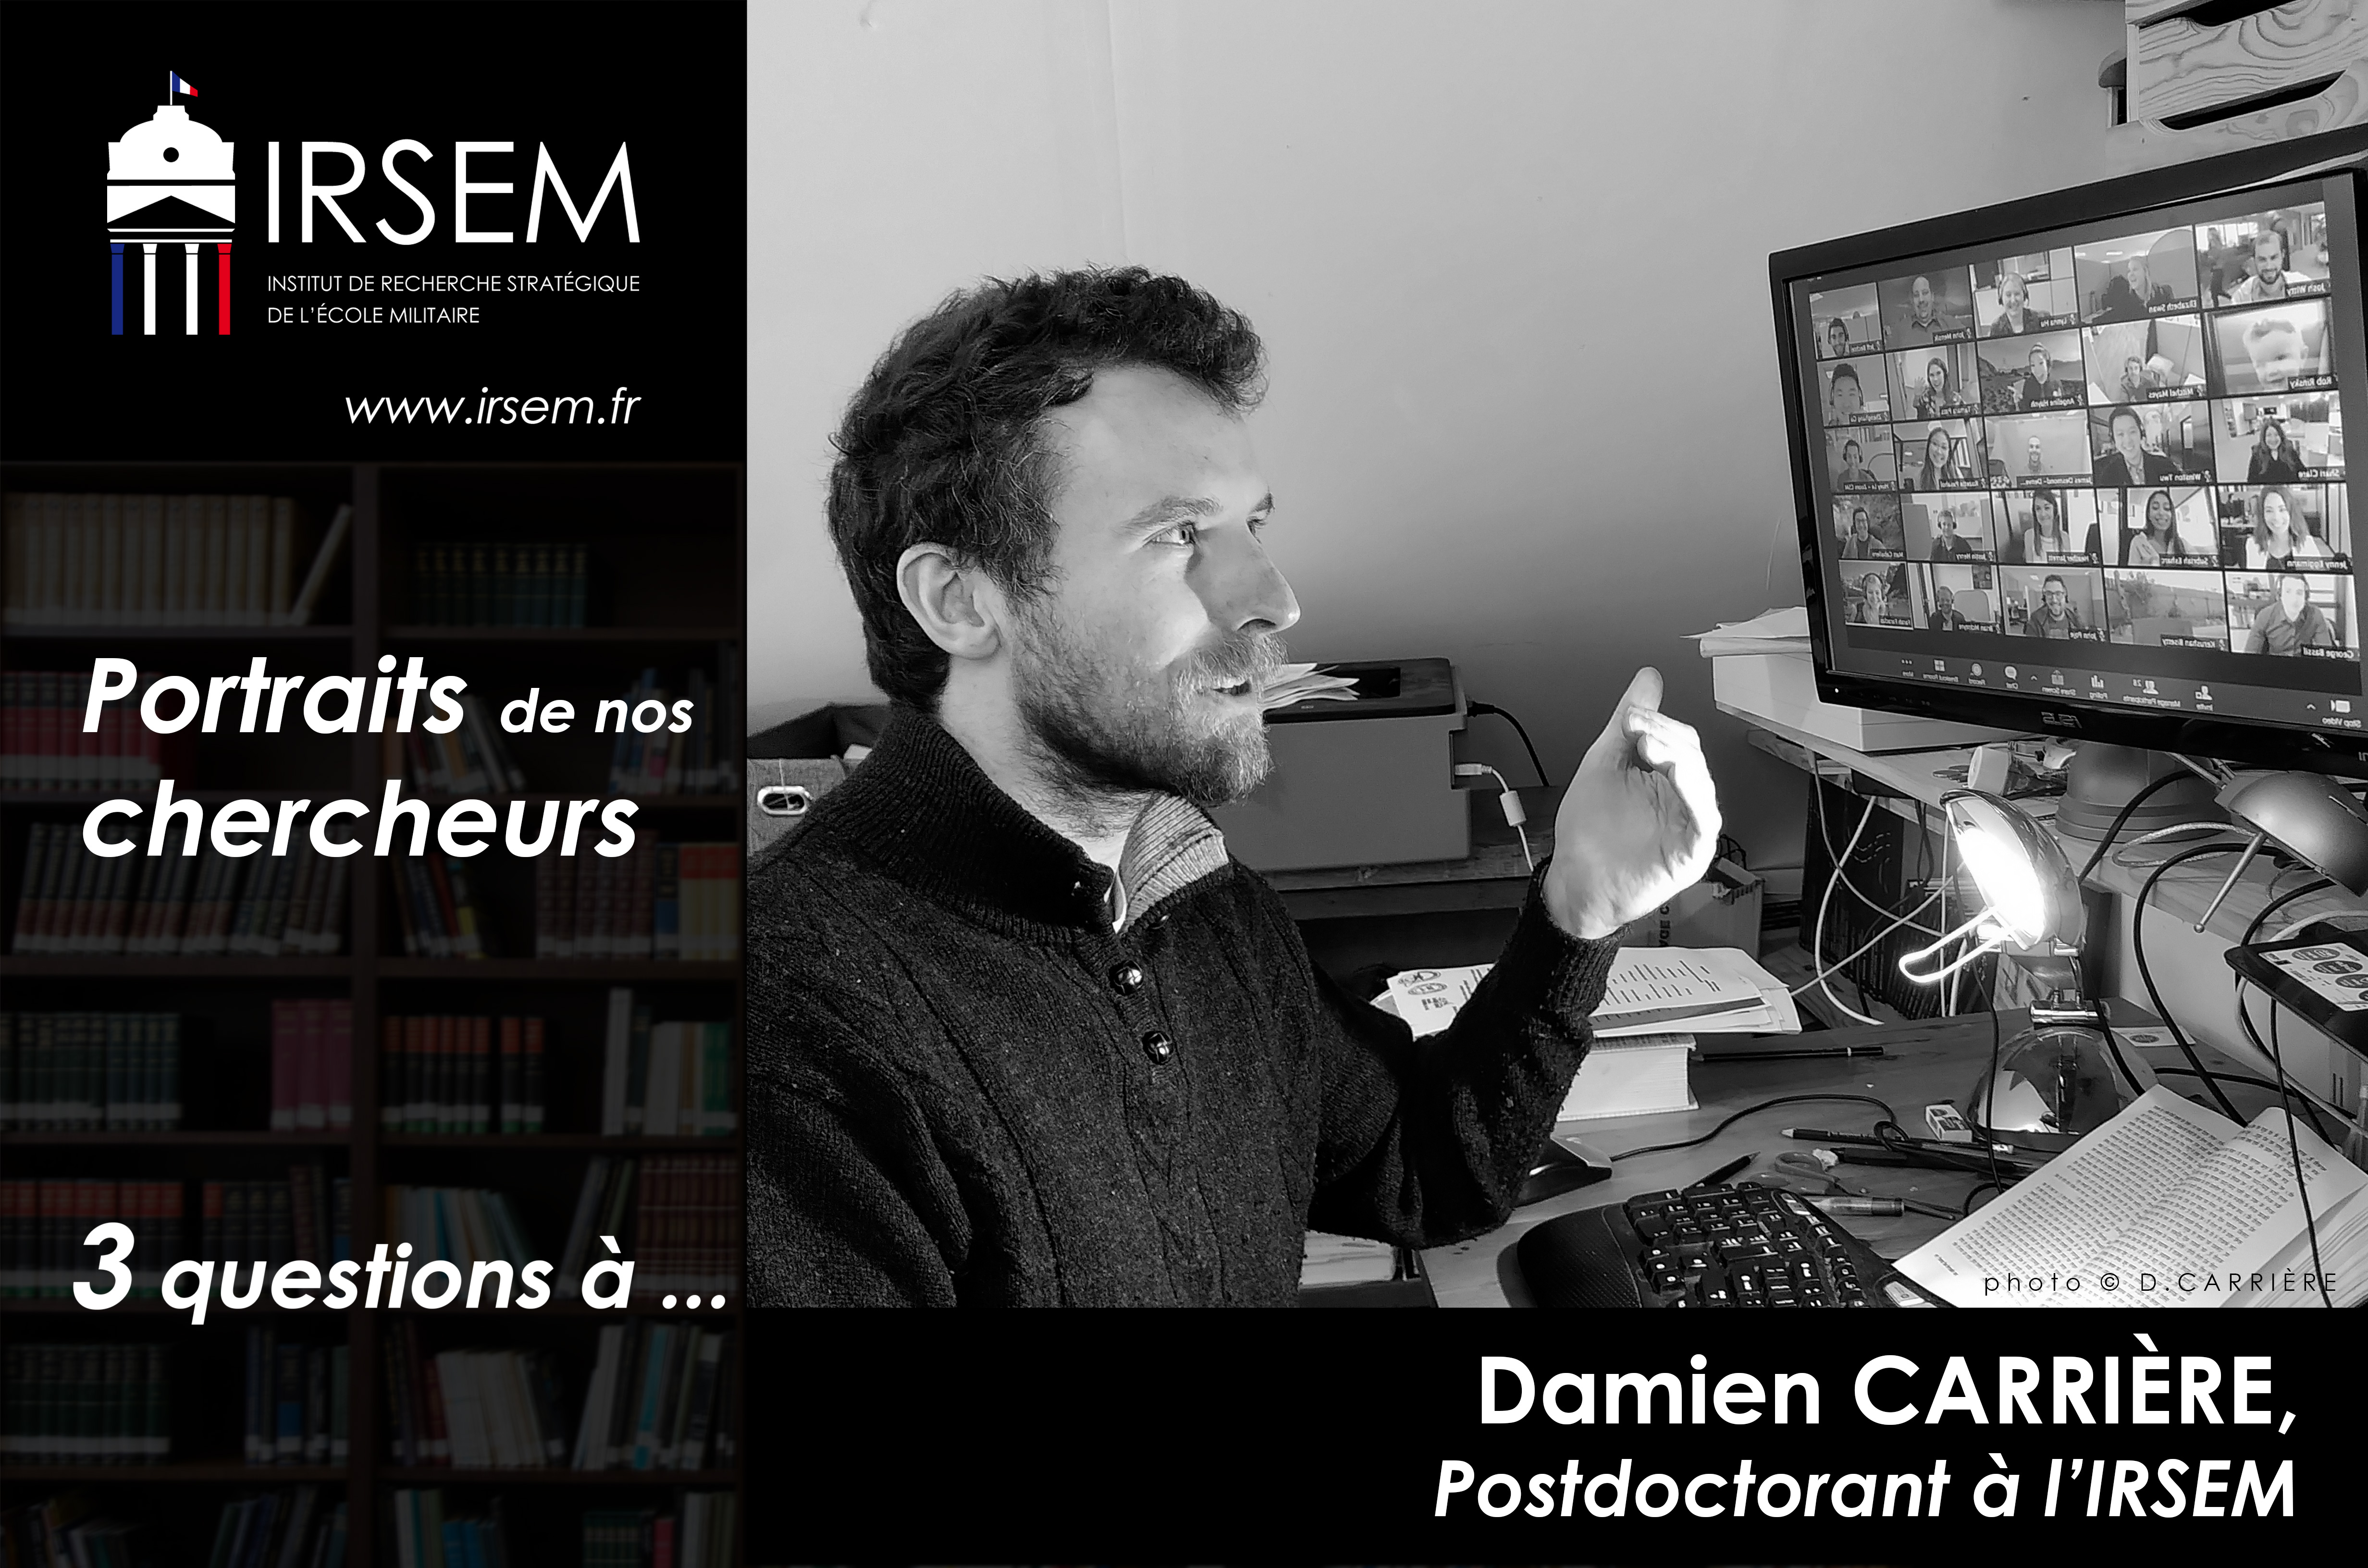 3 Questions CARRIERE Damien V1